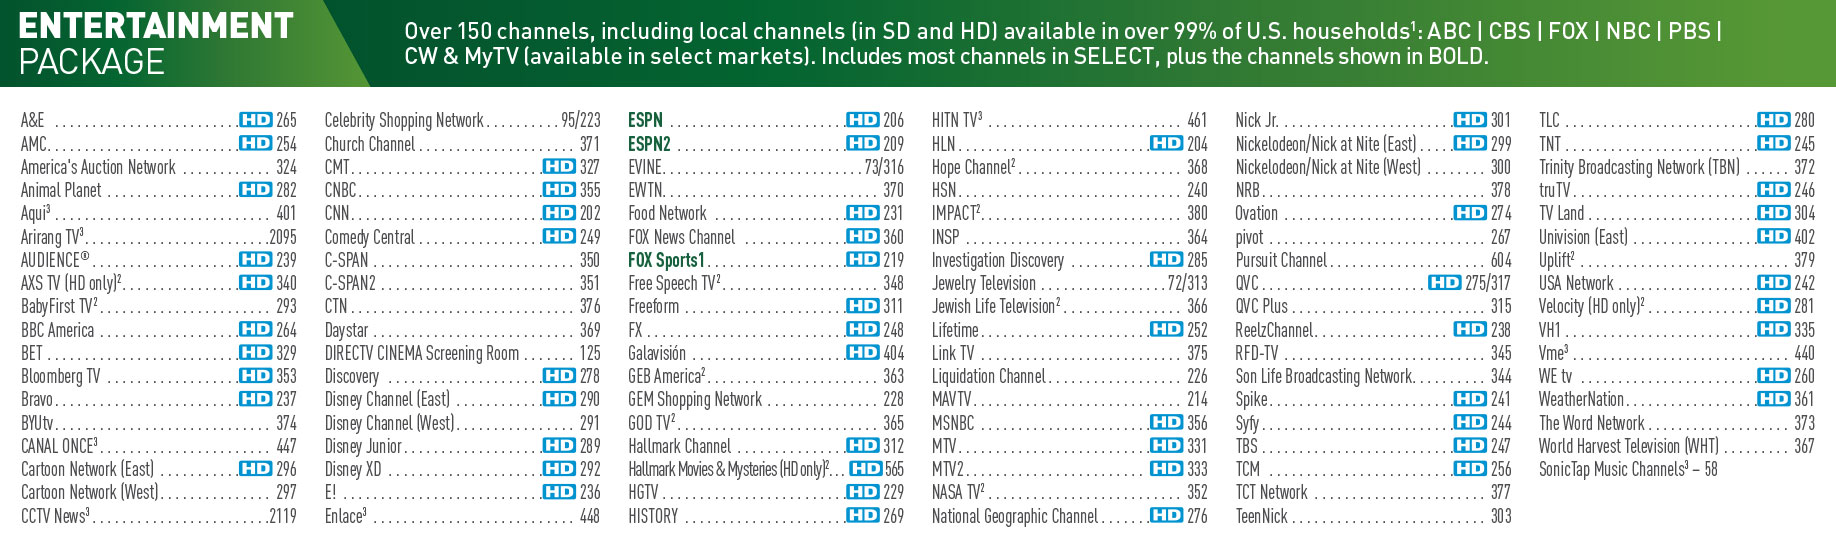 direct tv travel channel travelyok co rh travelyok co directv local channel guide printable version directv local channel guide printable version